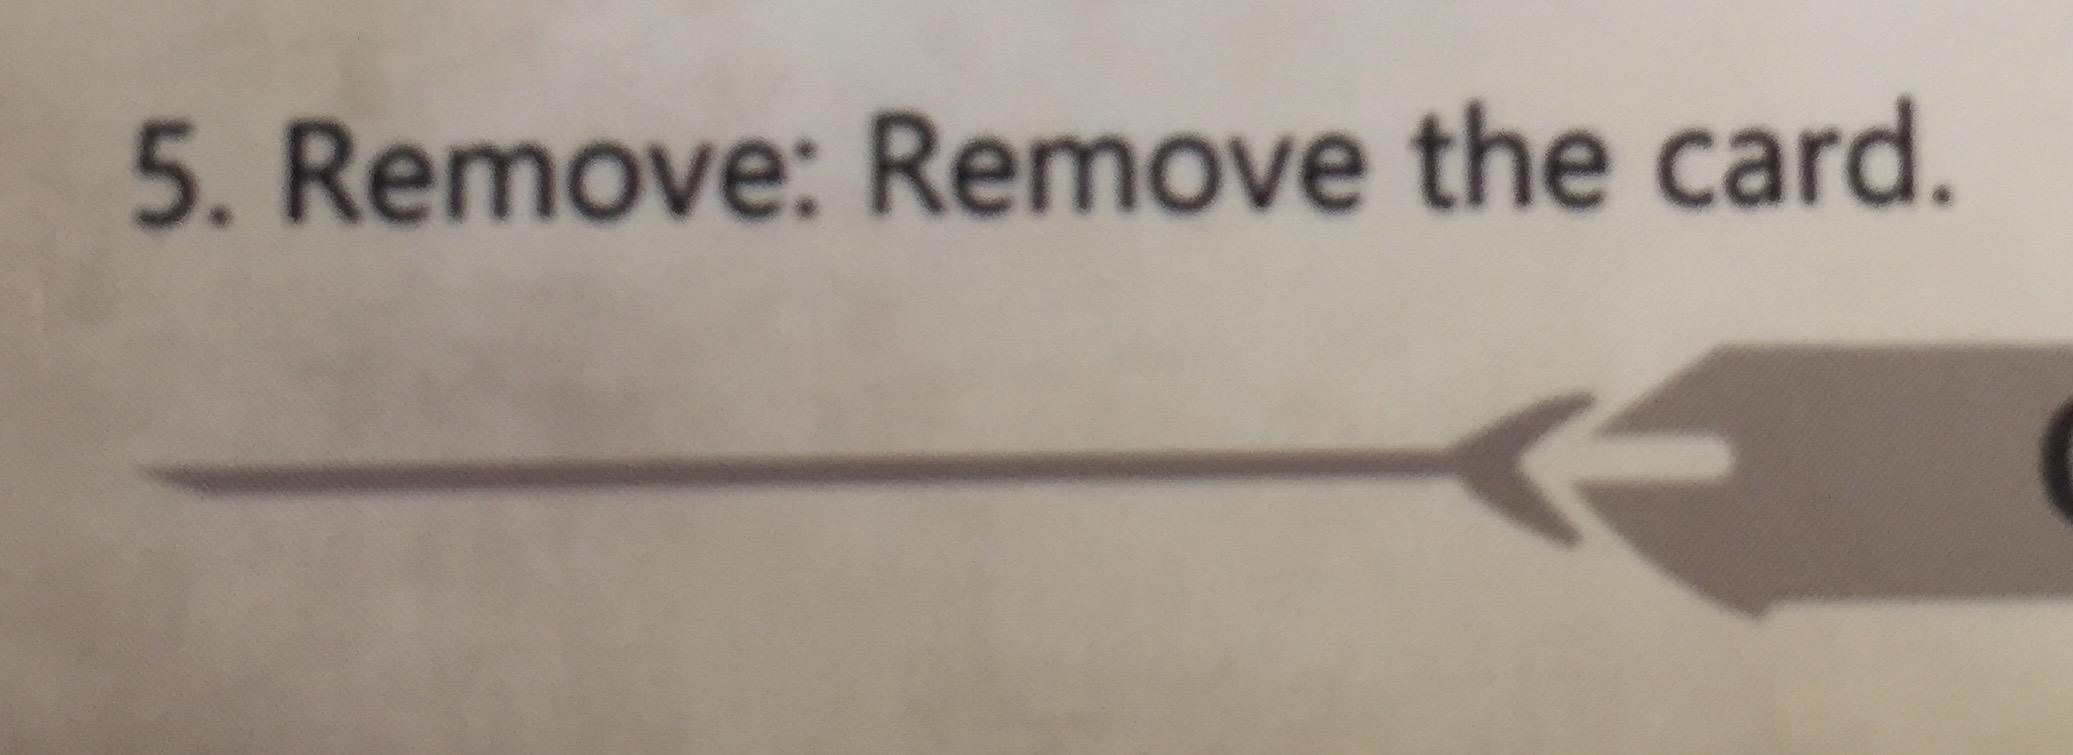 Thank you, Reference Card, for explaining. What in the world does this even mean?!?!